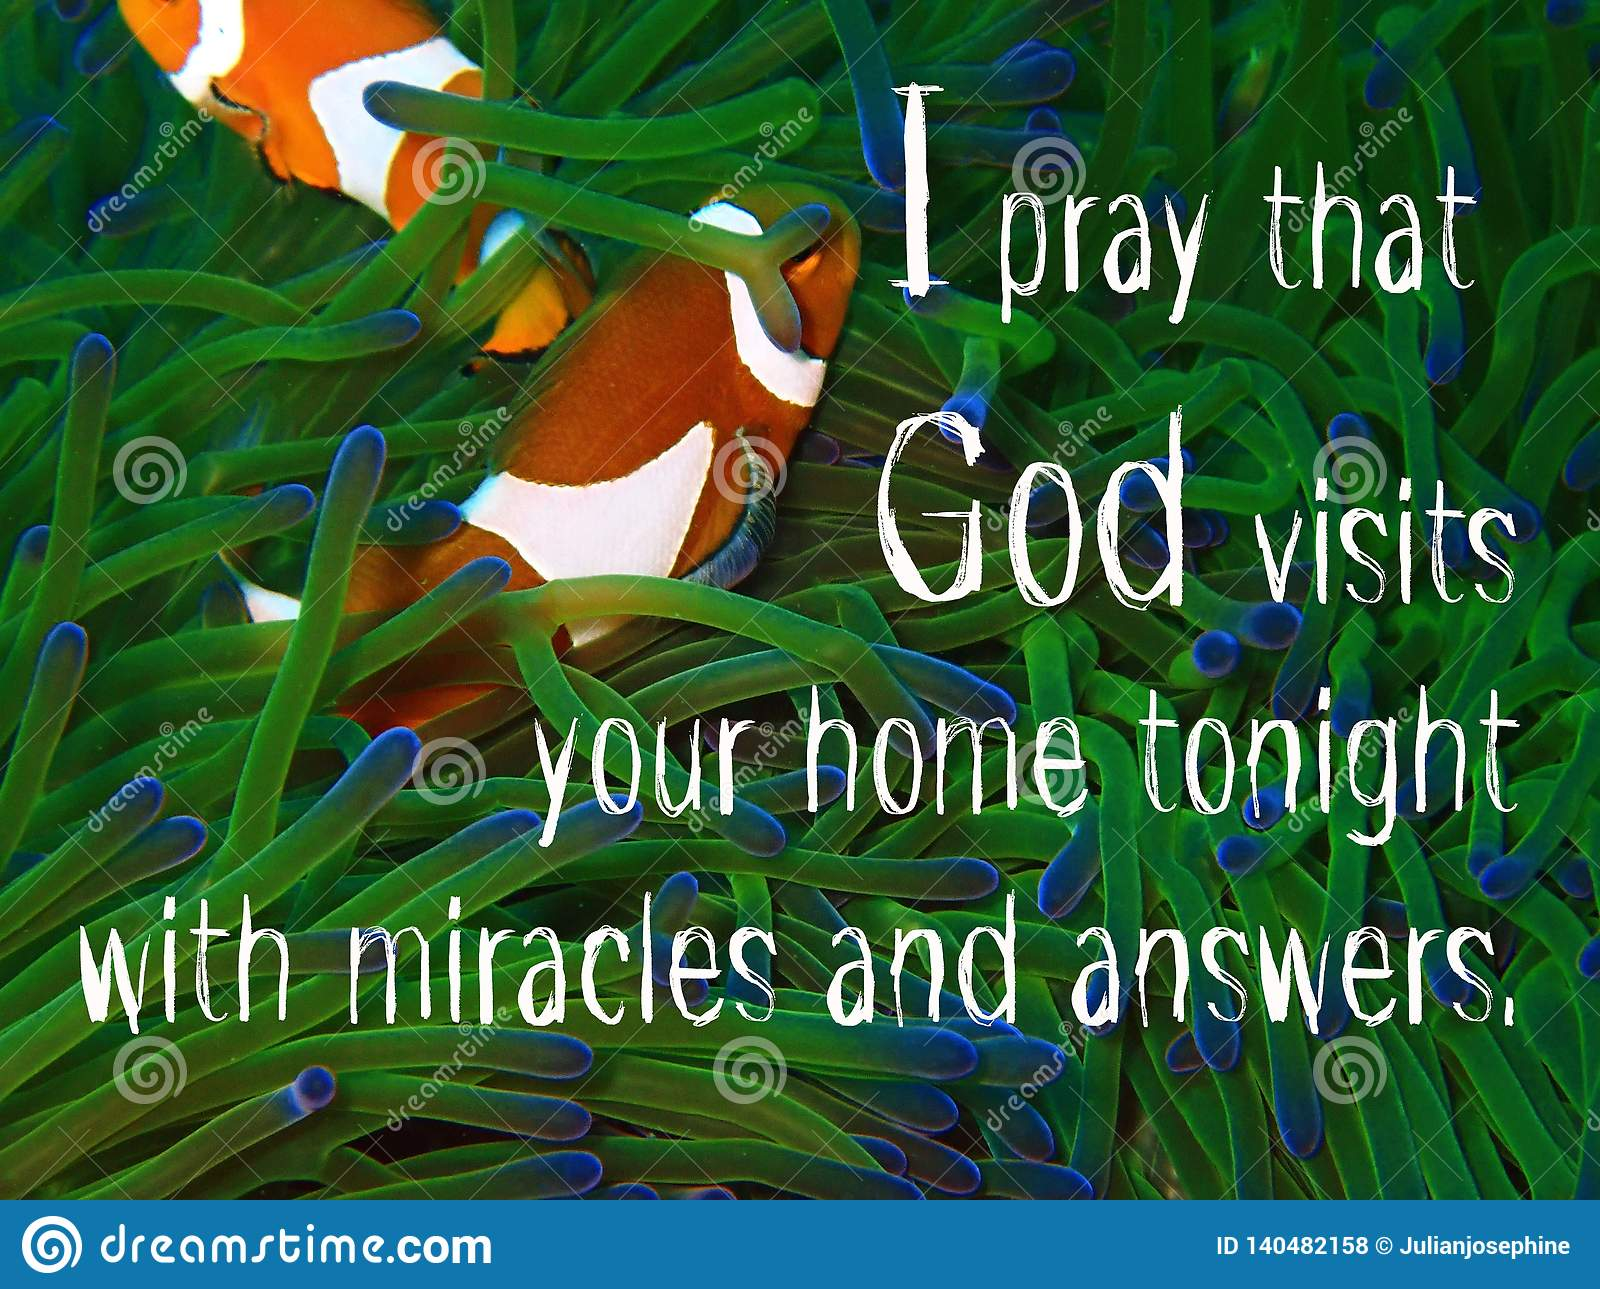 God Visits Our Home Design For Christianity With Underwater